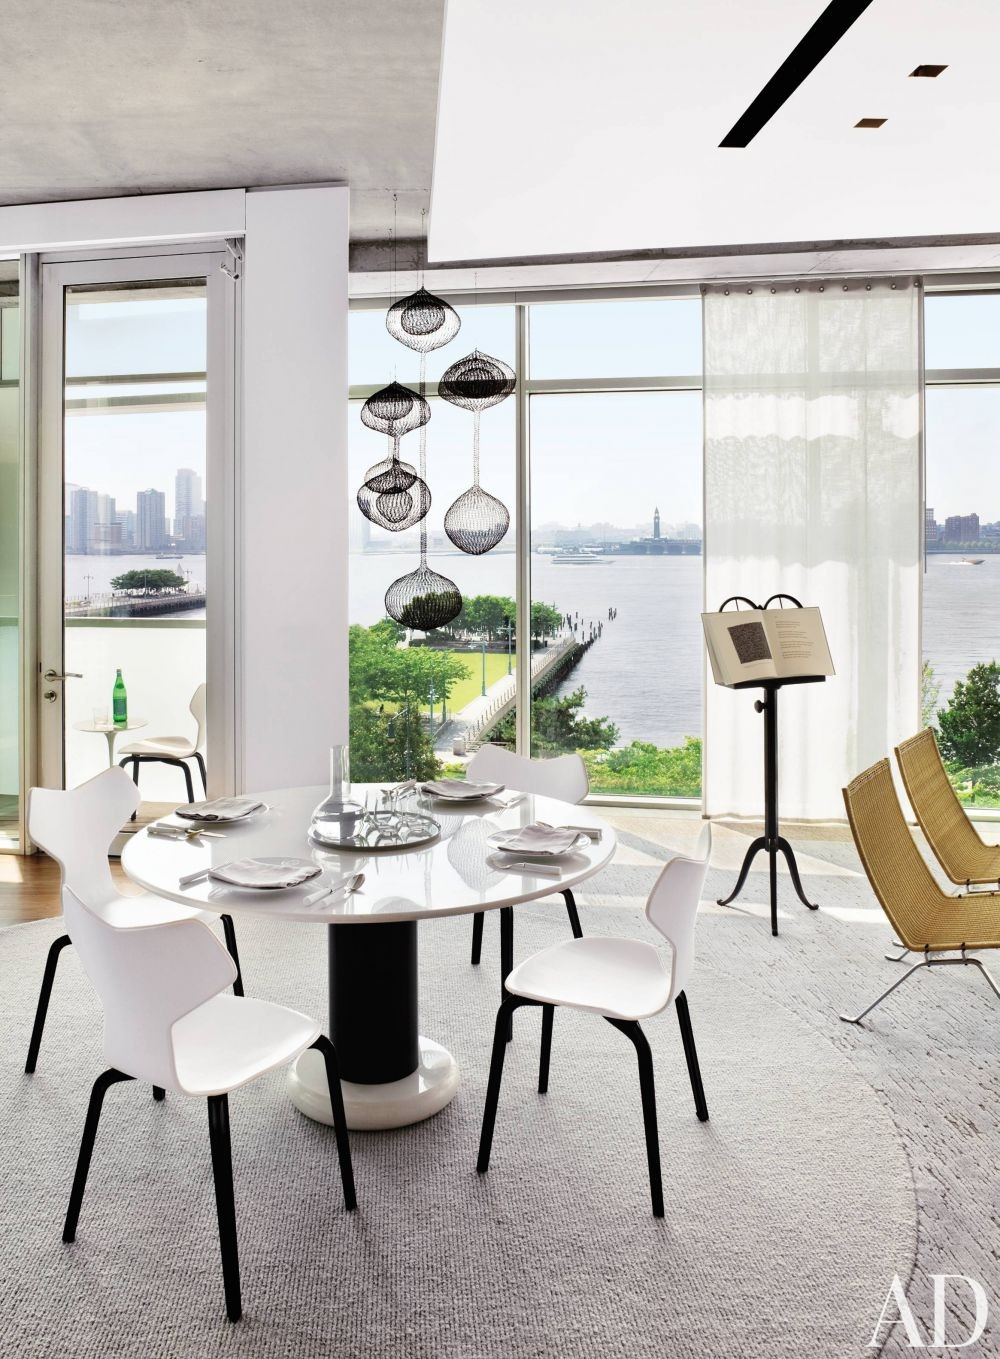 Modern Dining Room by Shelton, Mindel & Associates in New York, New York